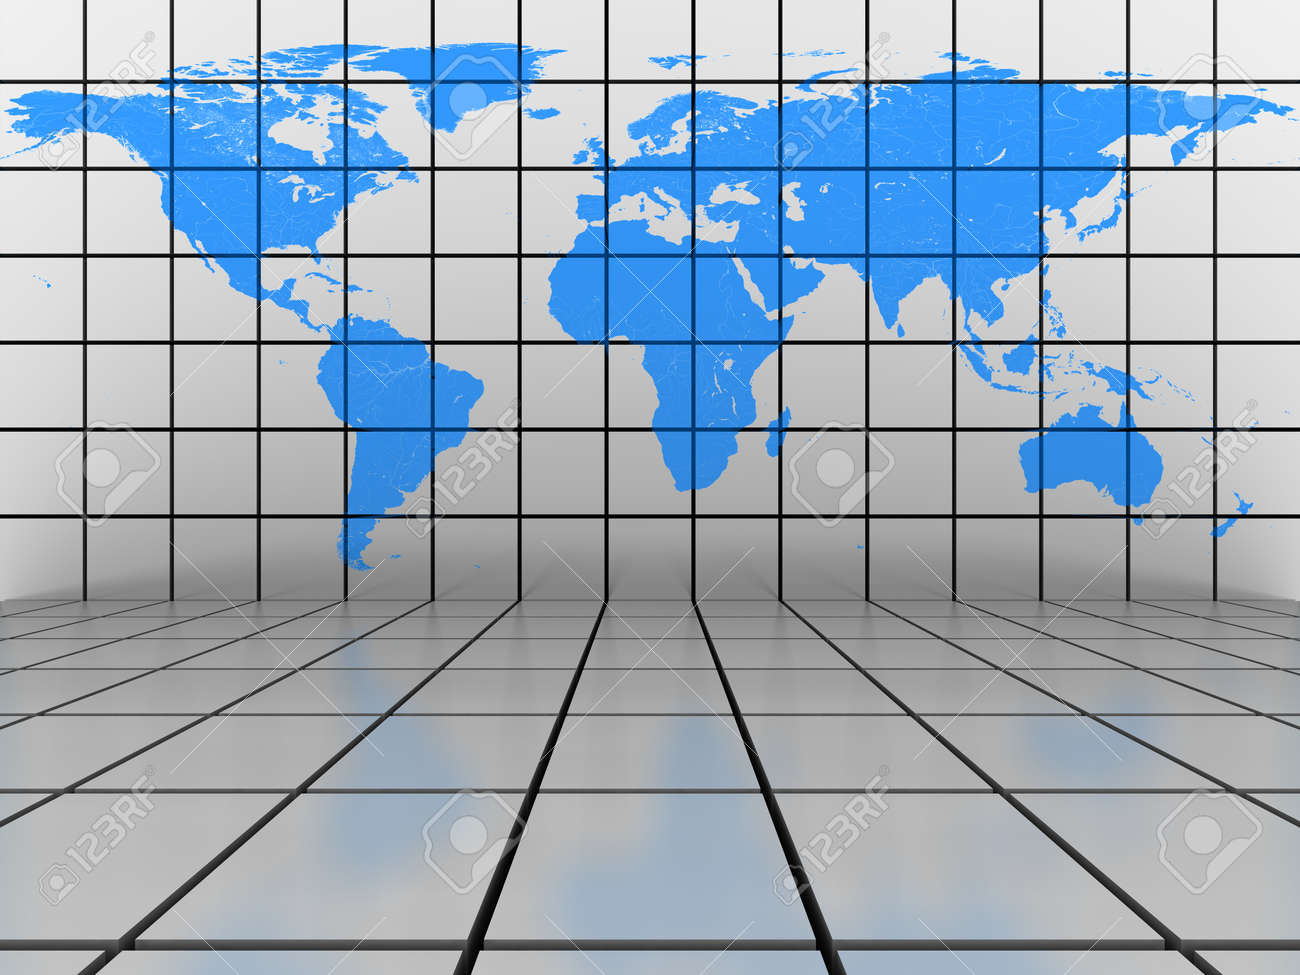 Tiled background scene with blue world map on the vertical wall tiled background scene with blue world map on the vertical wall foto de archivo gumiabroncs Images